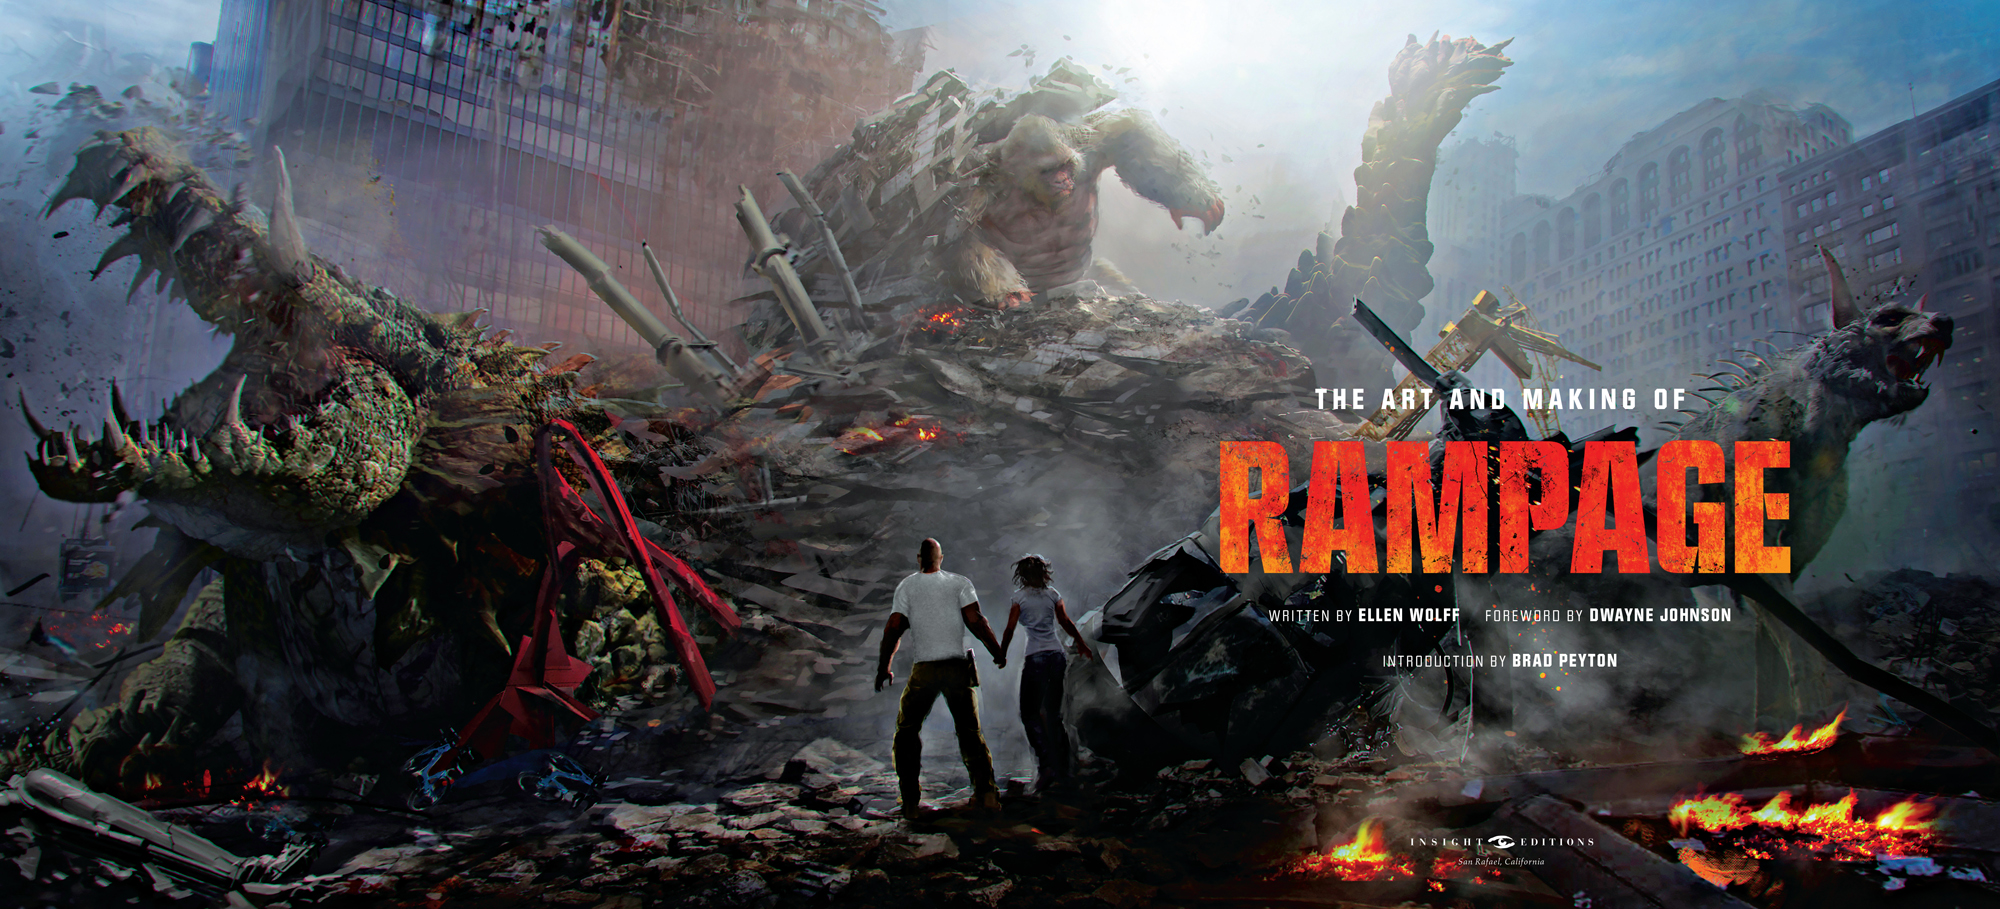 Rampage Movie Hd Wallpapers Download 1080p: Hd Wallpaper Rampage Movie Poster HD Wallpaper K Wallpaper